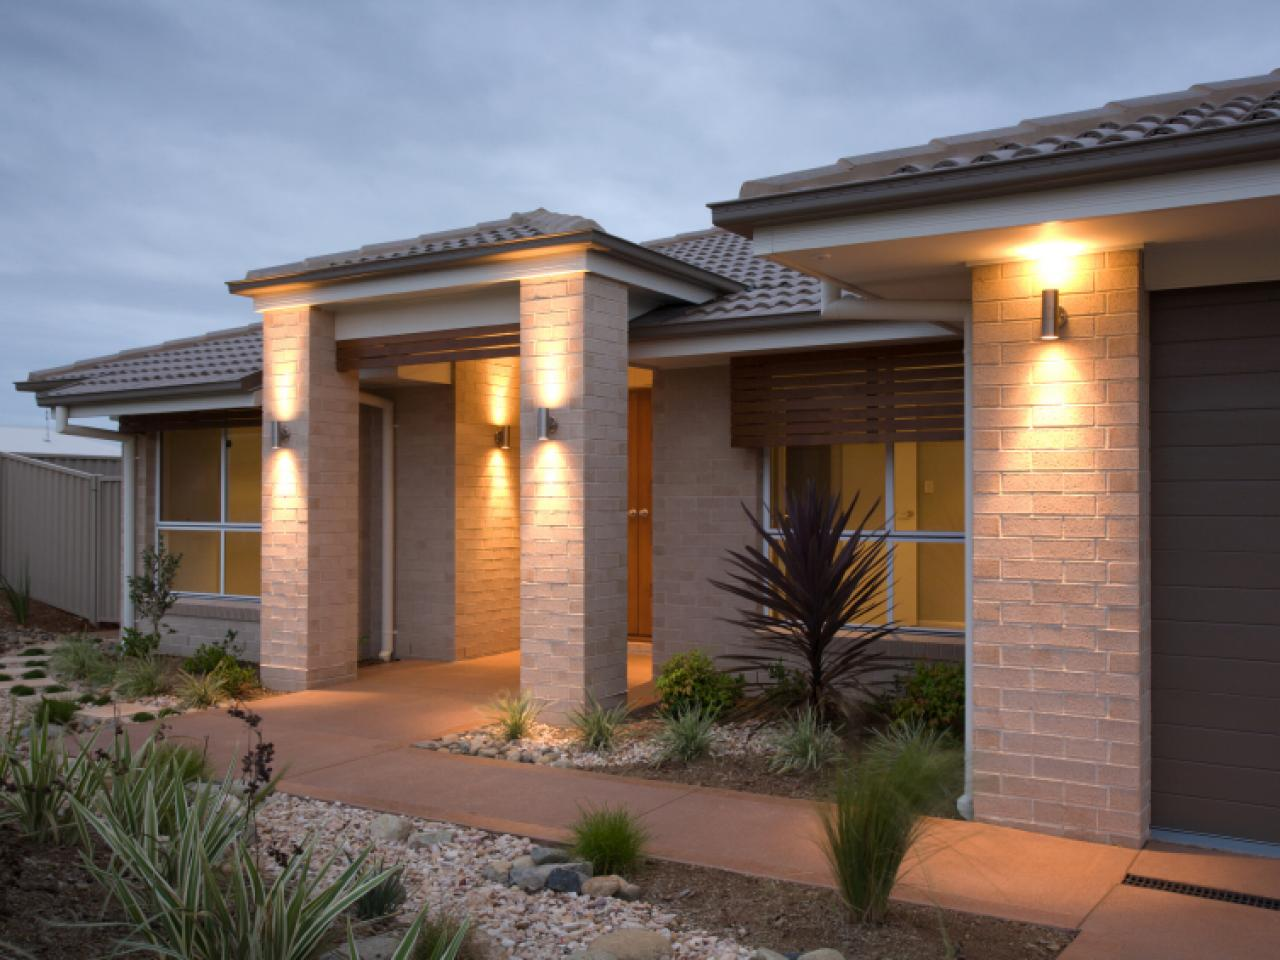 Exterior Lighting: Creating An Enchanting Front Entry With Architectural